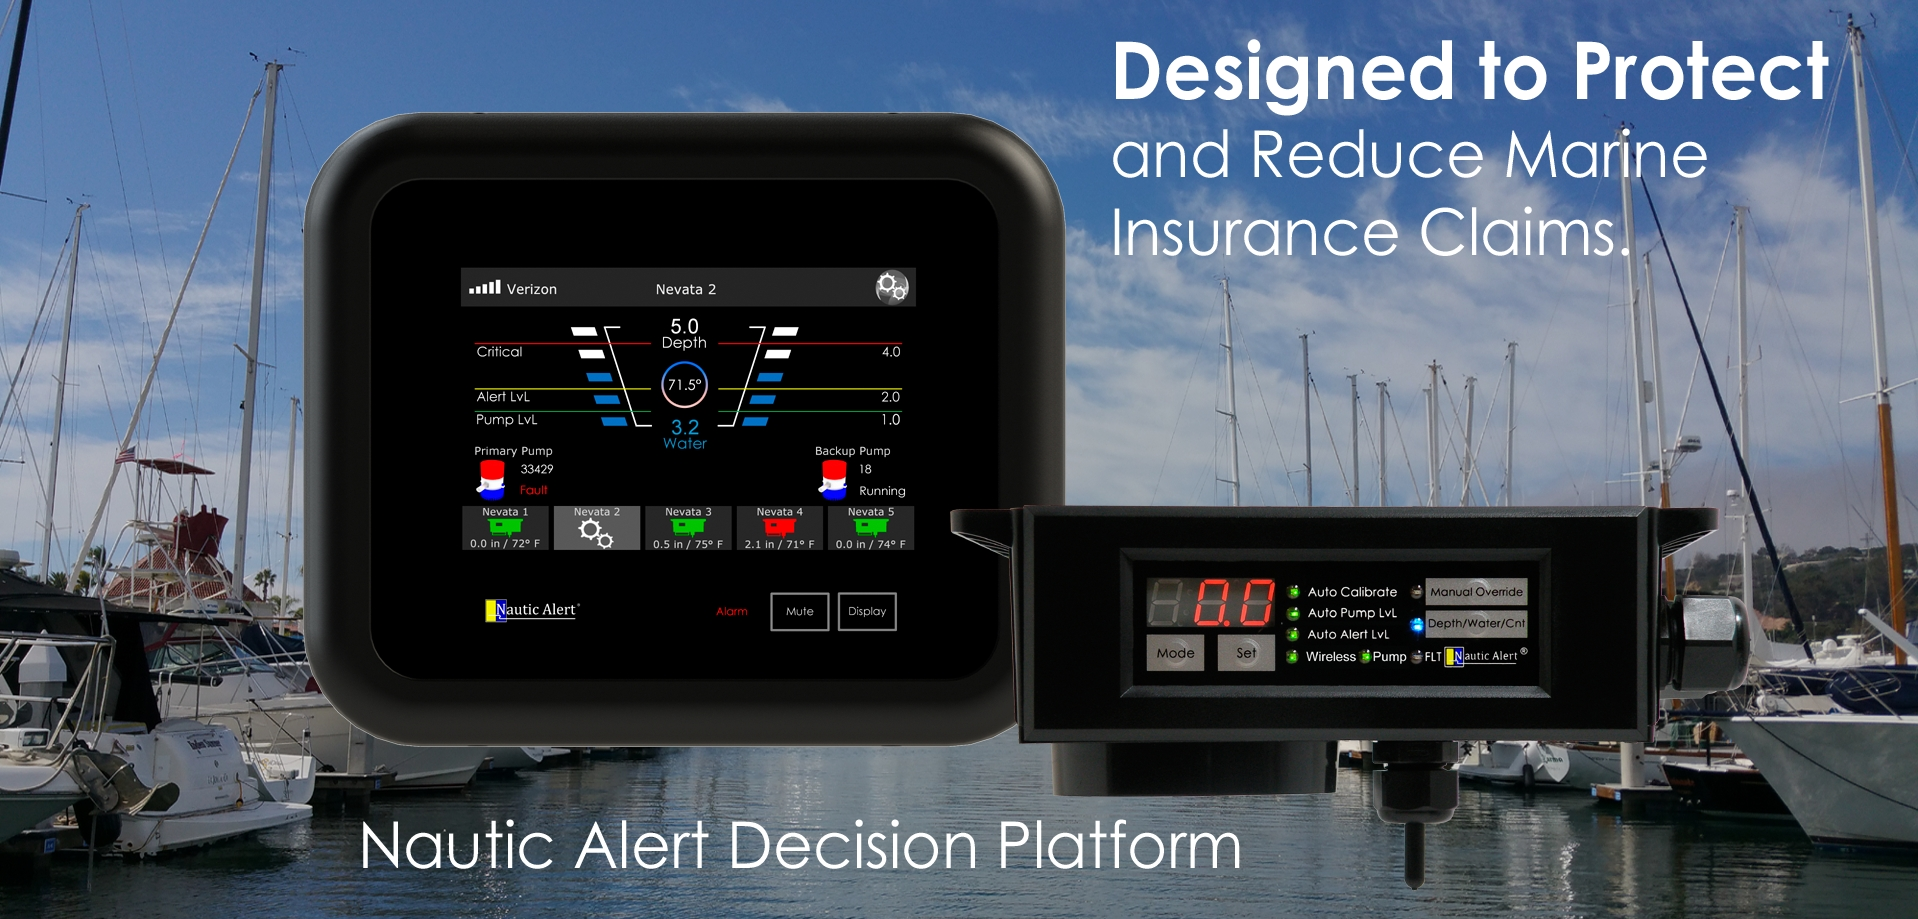 Early Detection and Notification of Key Bilge Events and Unexpected Yacht Movement for Prevention, Protection, and a Peace of Mind. www.NauticAlert.com (Photo: Business Wire)